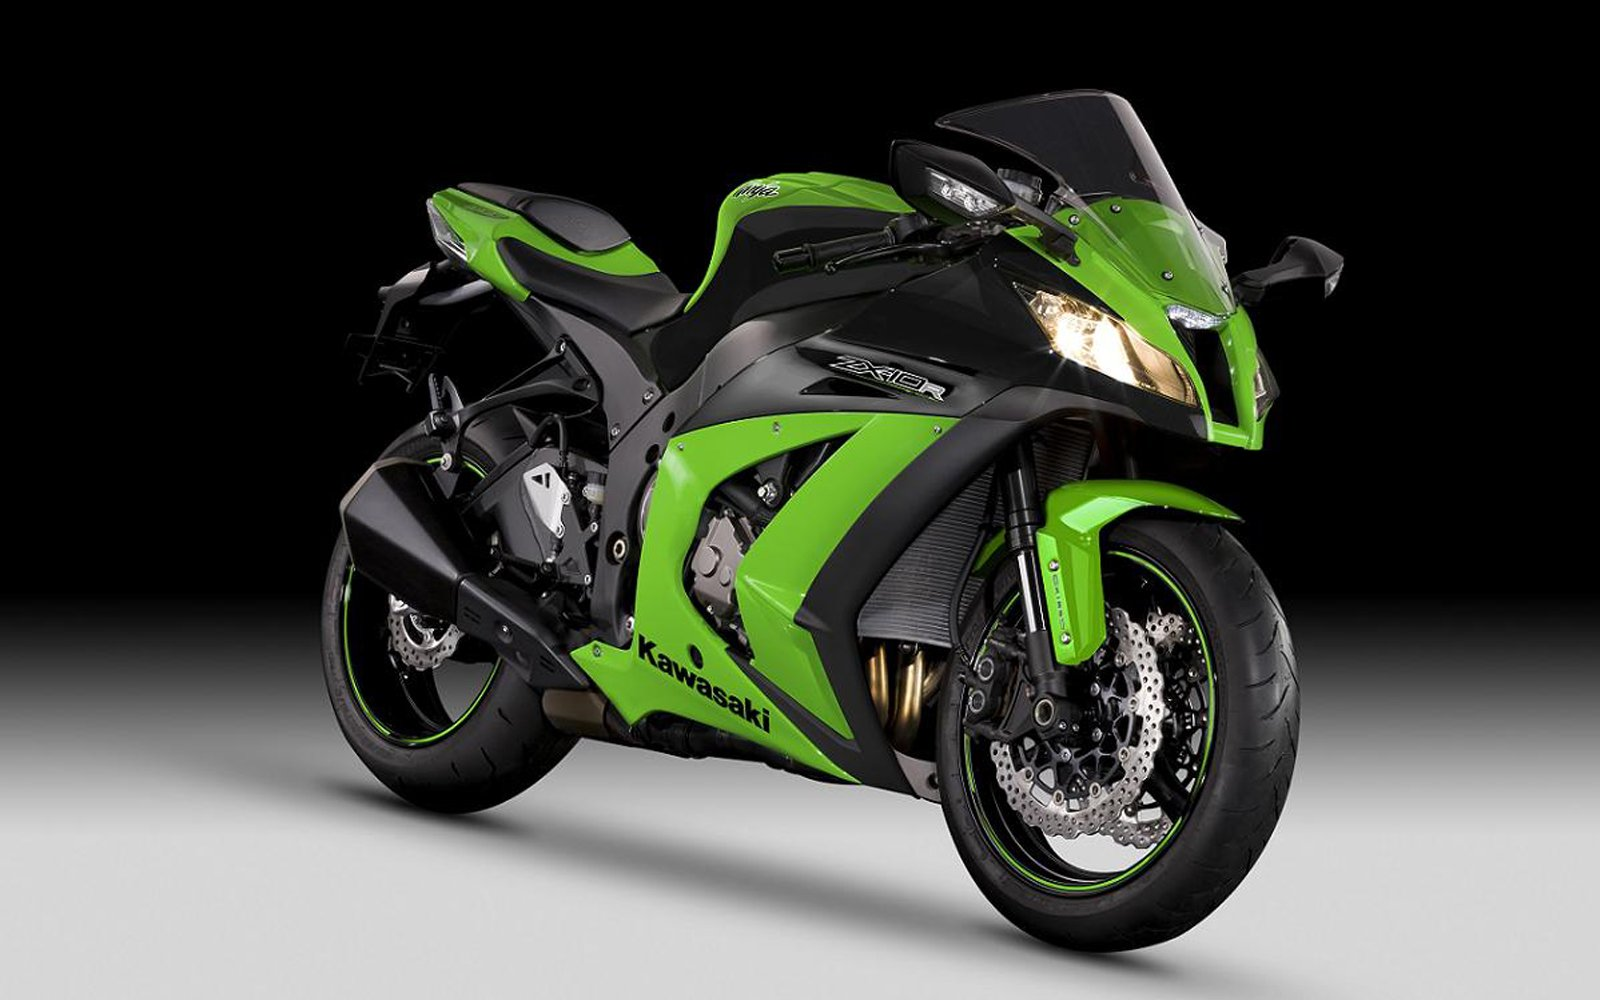 2016 Yamaha R1 Wallpaper   HD Wallpapers Backgrounds of Your Choice 1600x1000